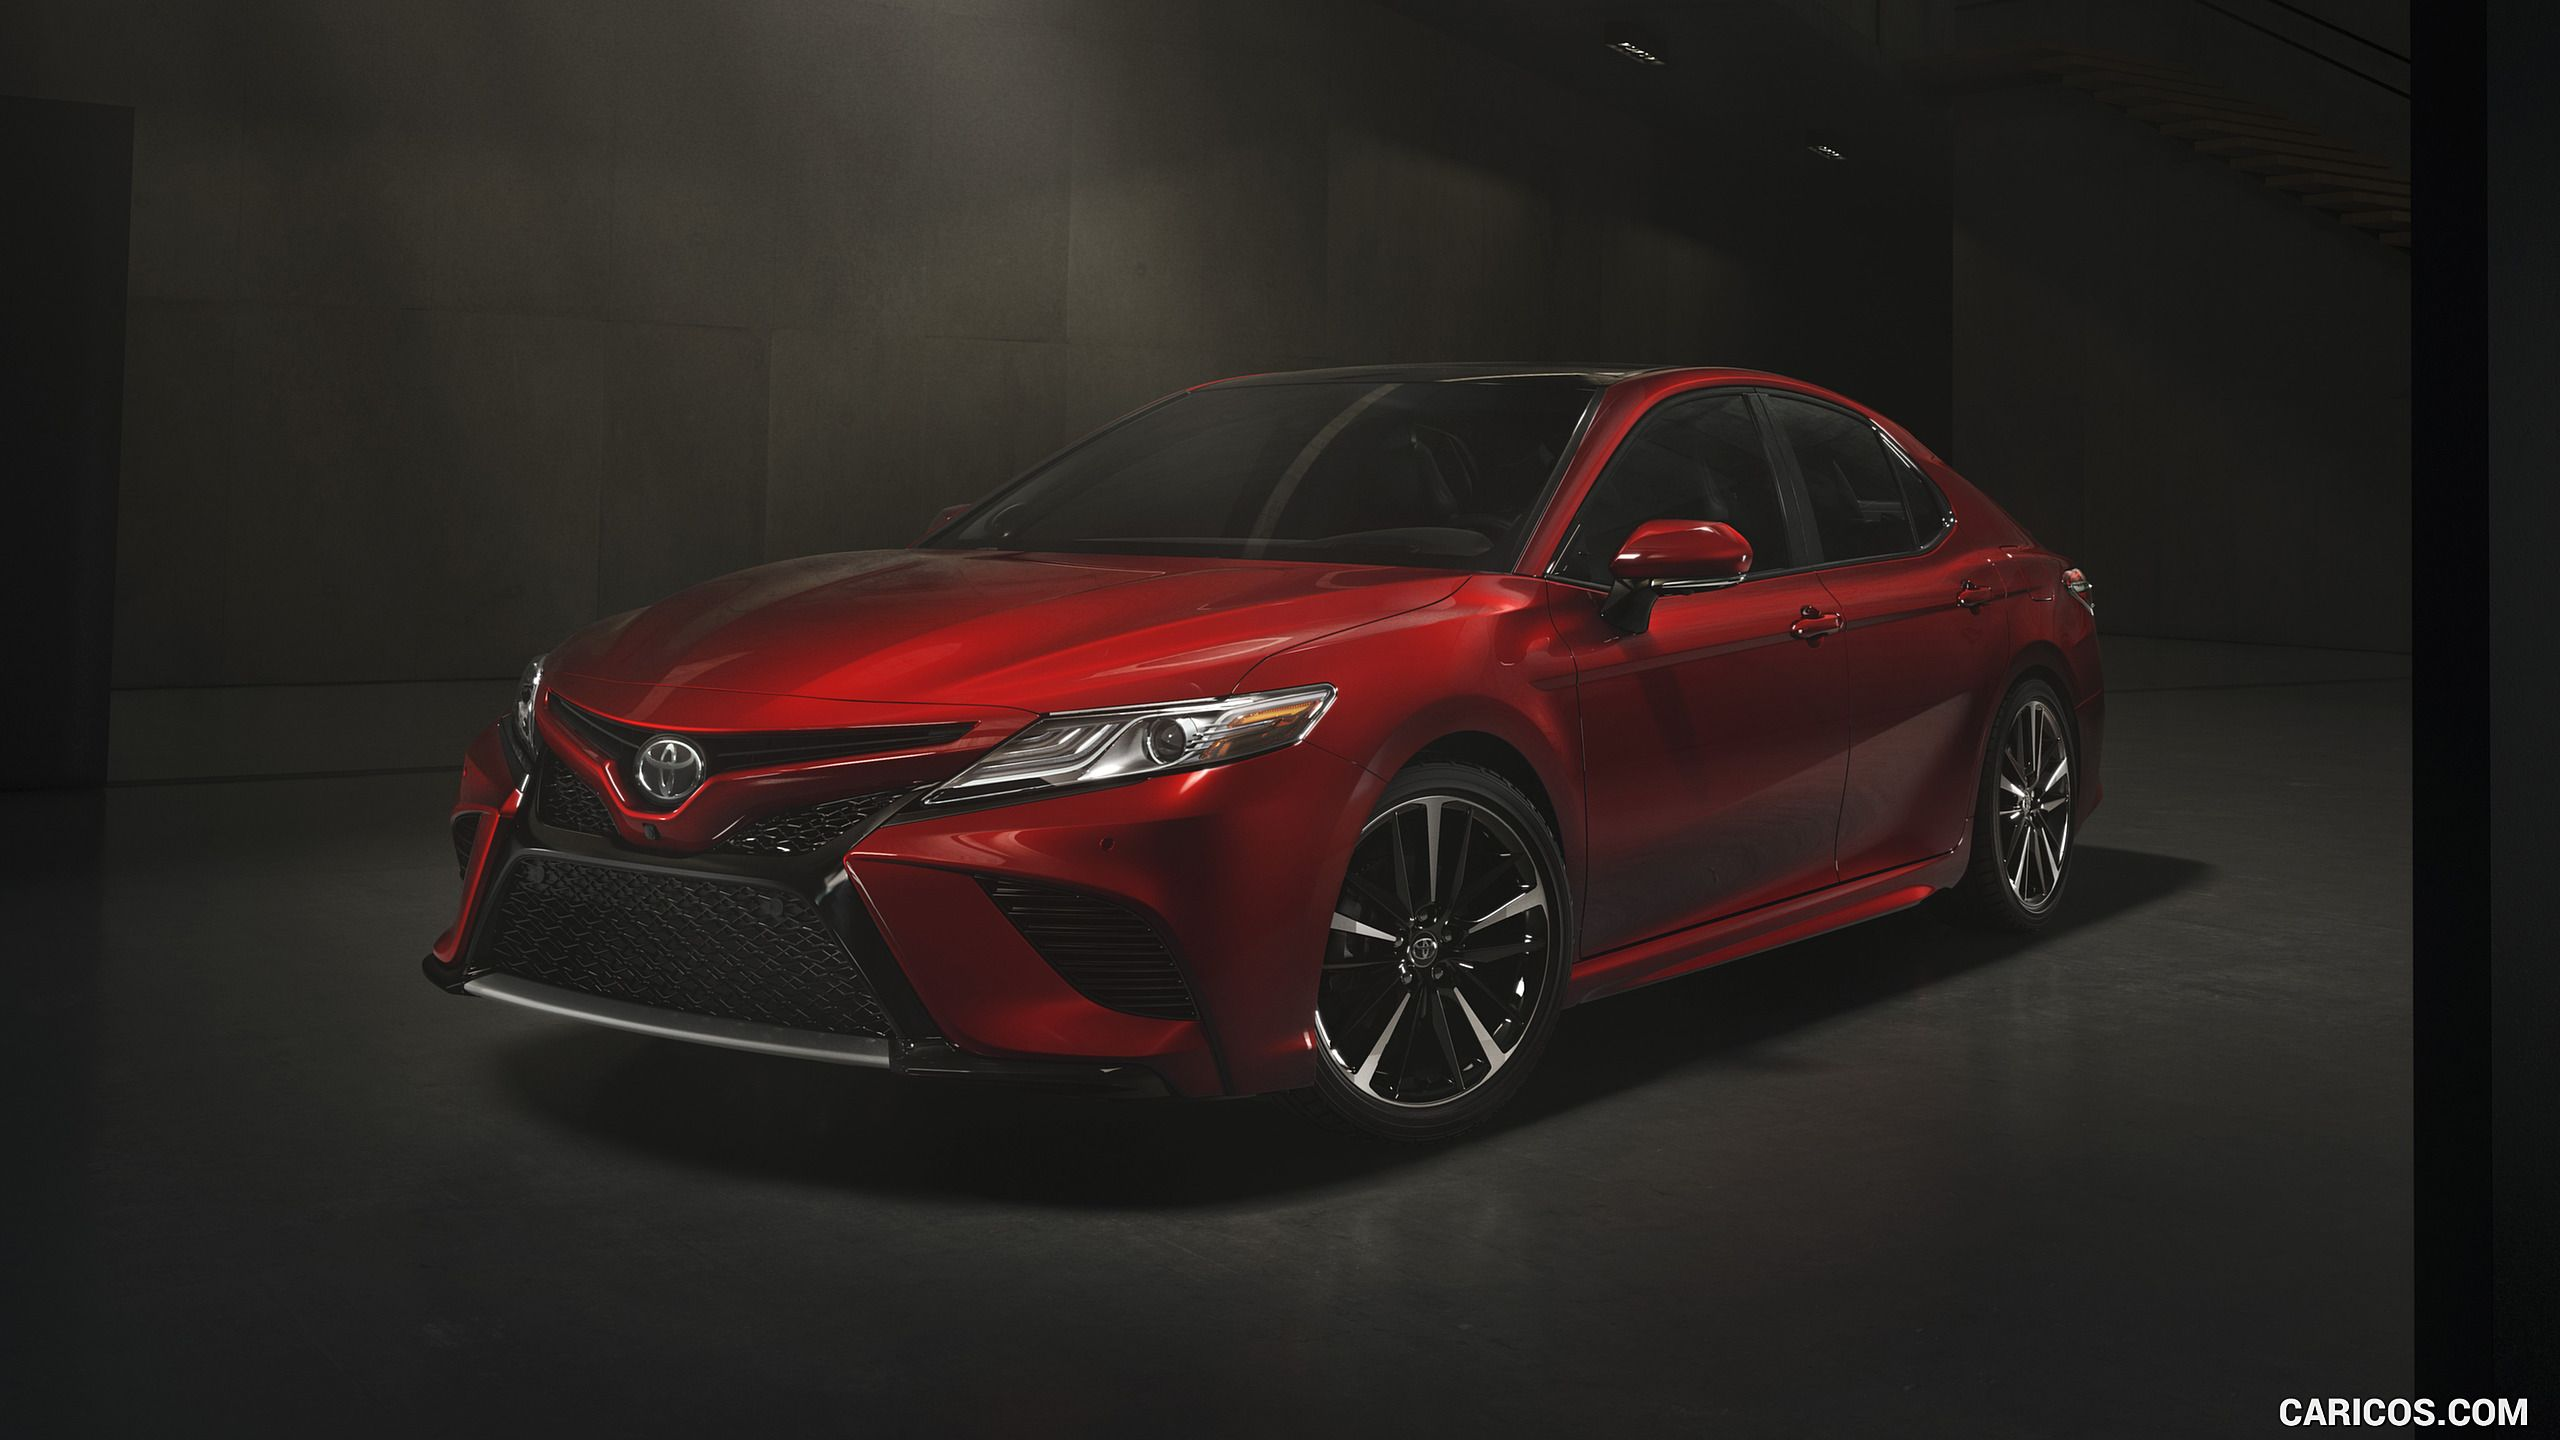 2018 toyota camry hybrid engine fuel economy toyota revealed a 2018 camry today in detroit that has an all the more engaging outline